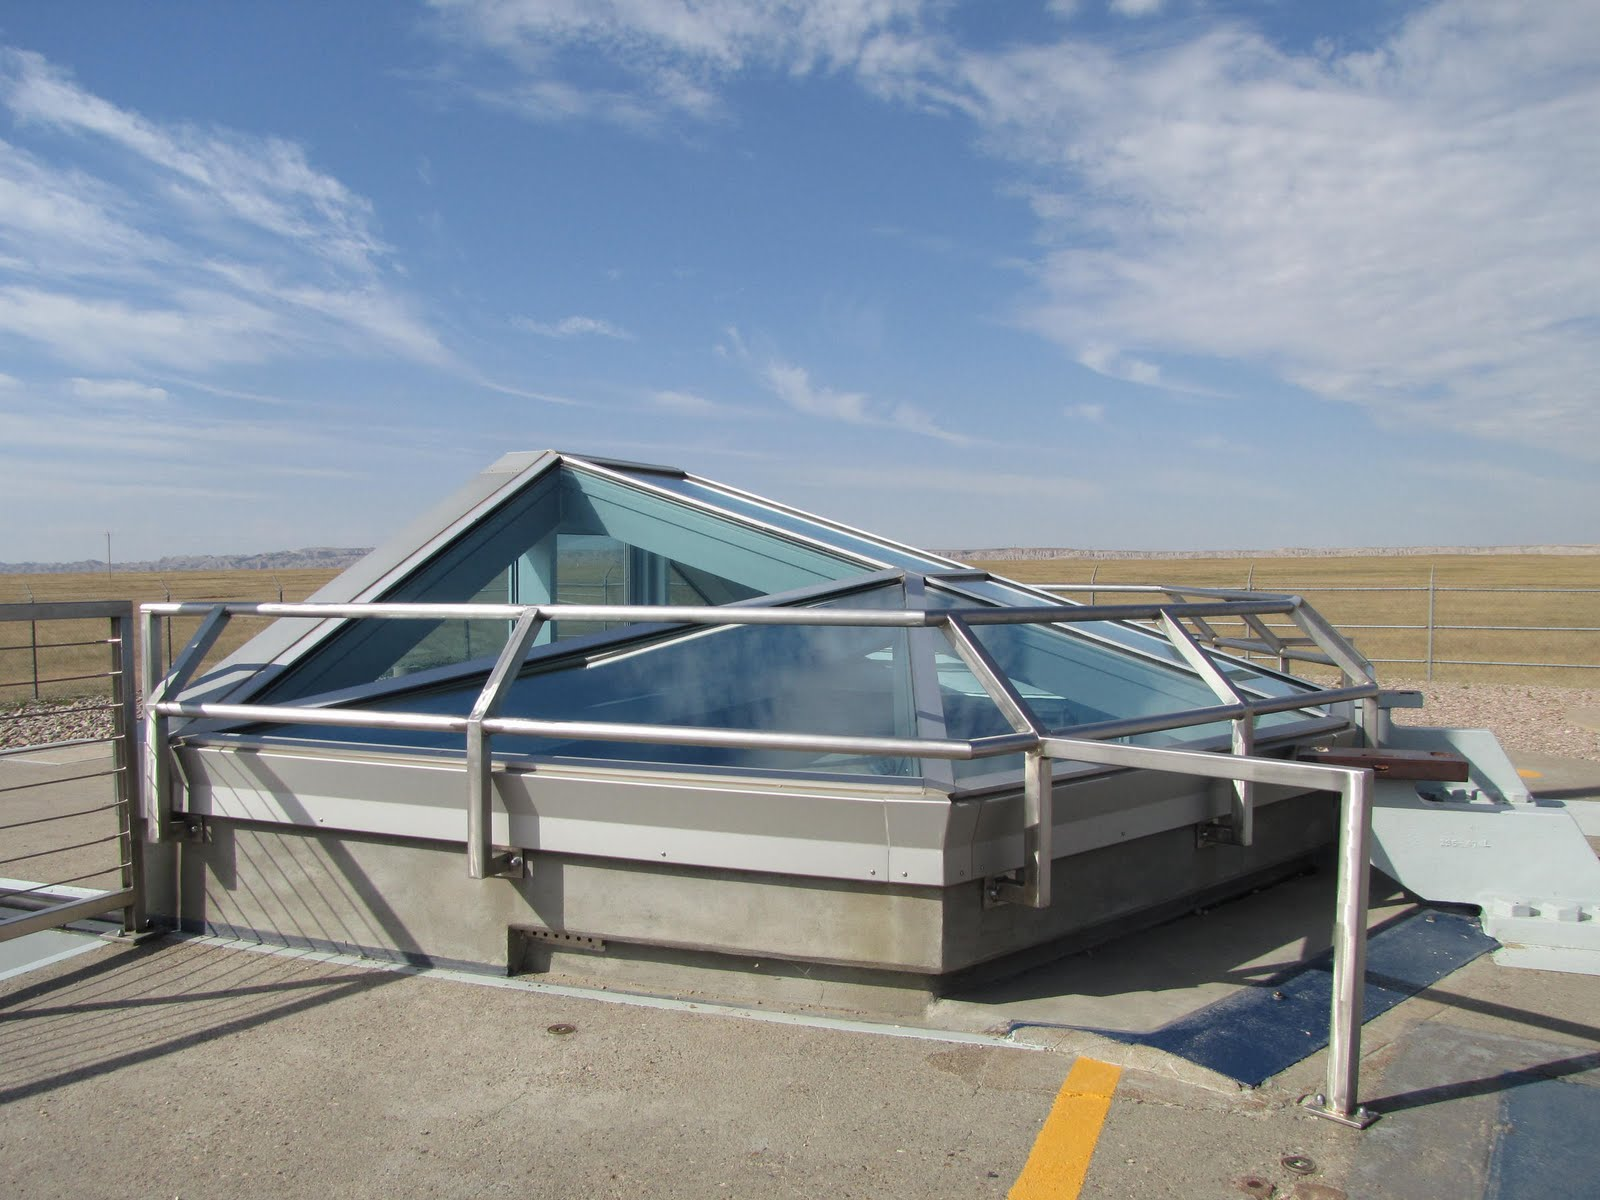 one year trip: Nuclear Missile Silos Along the I-90